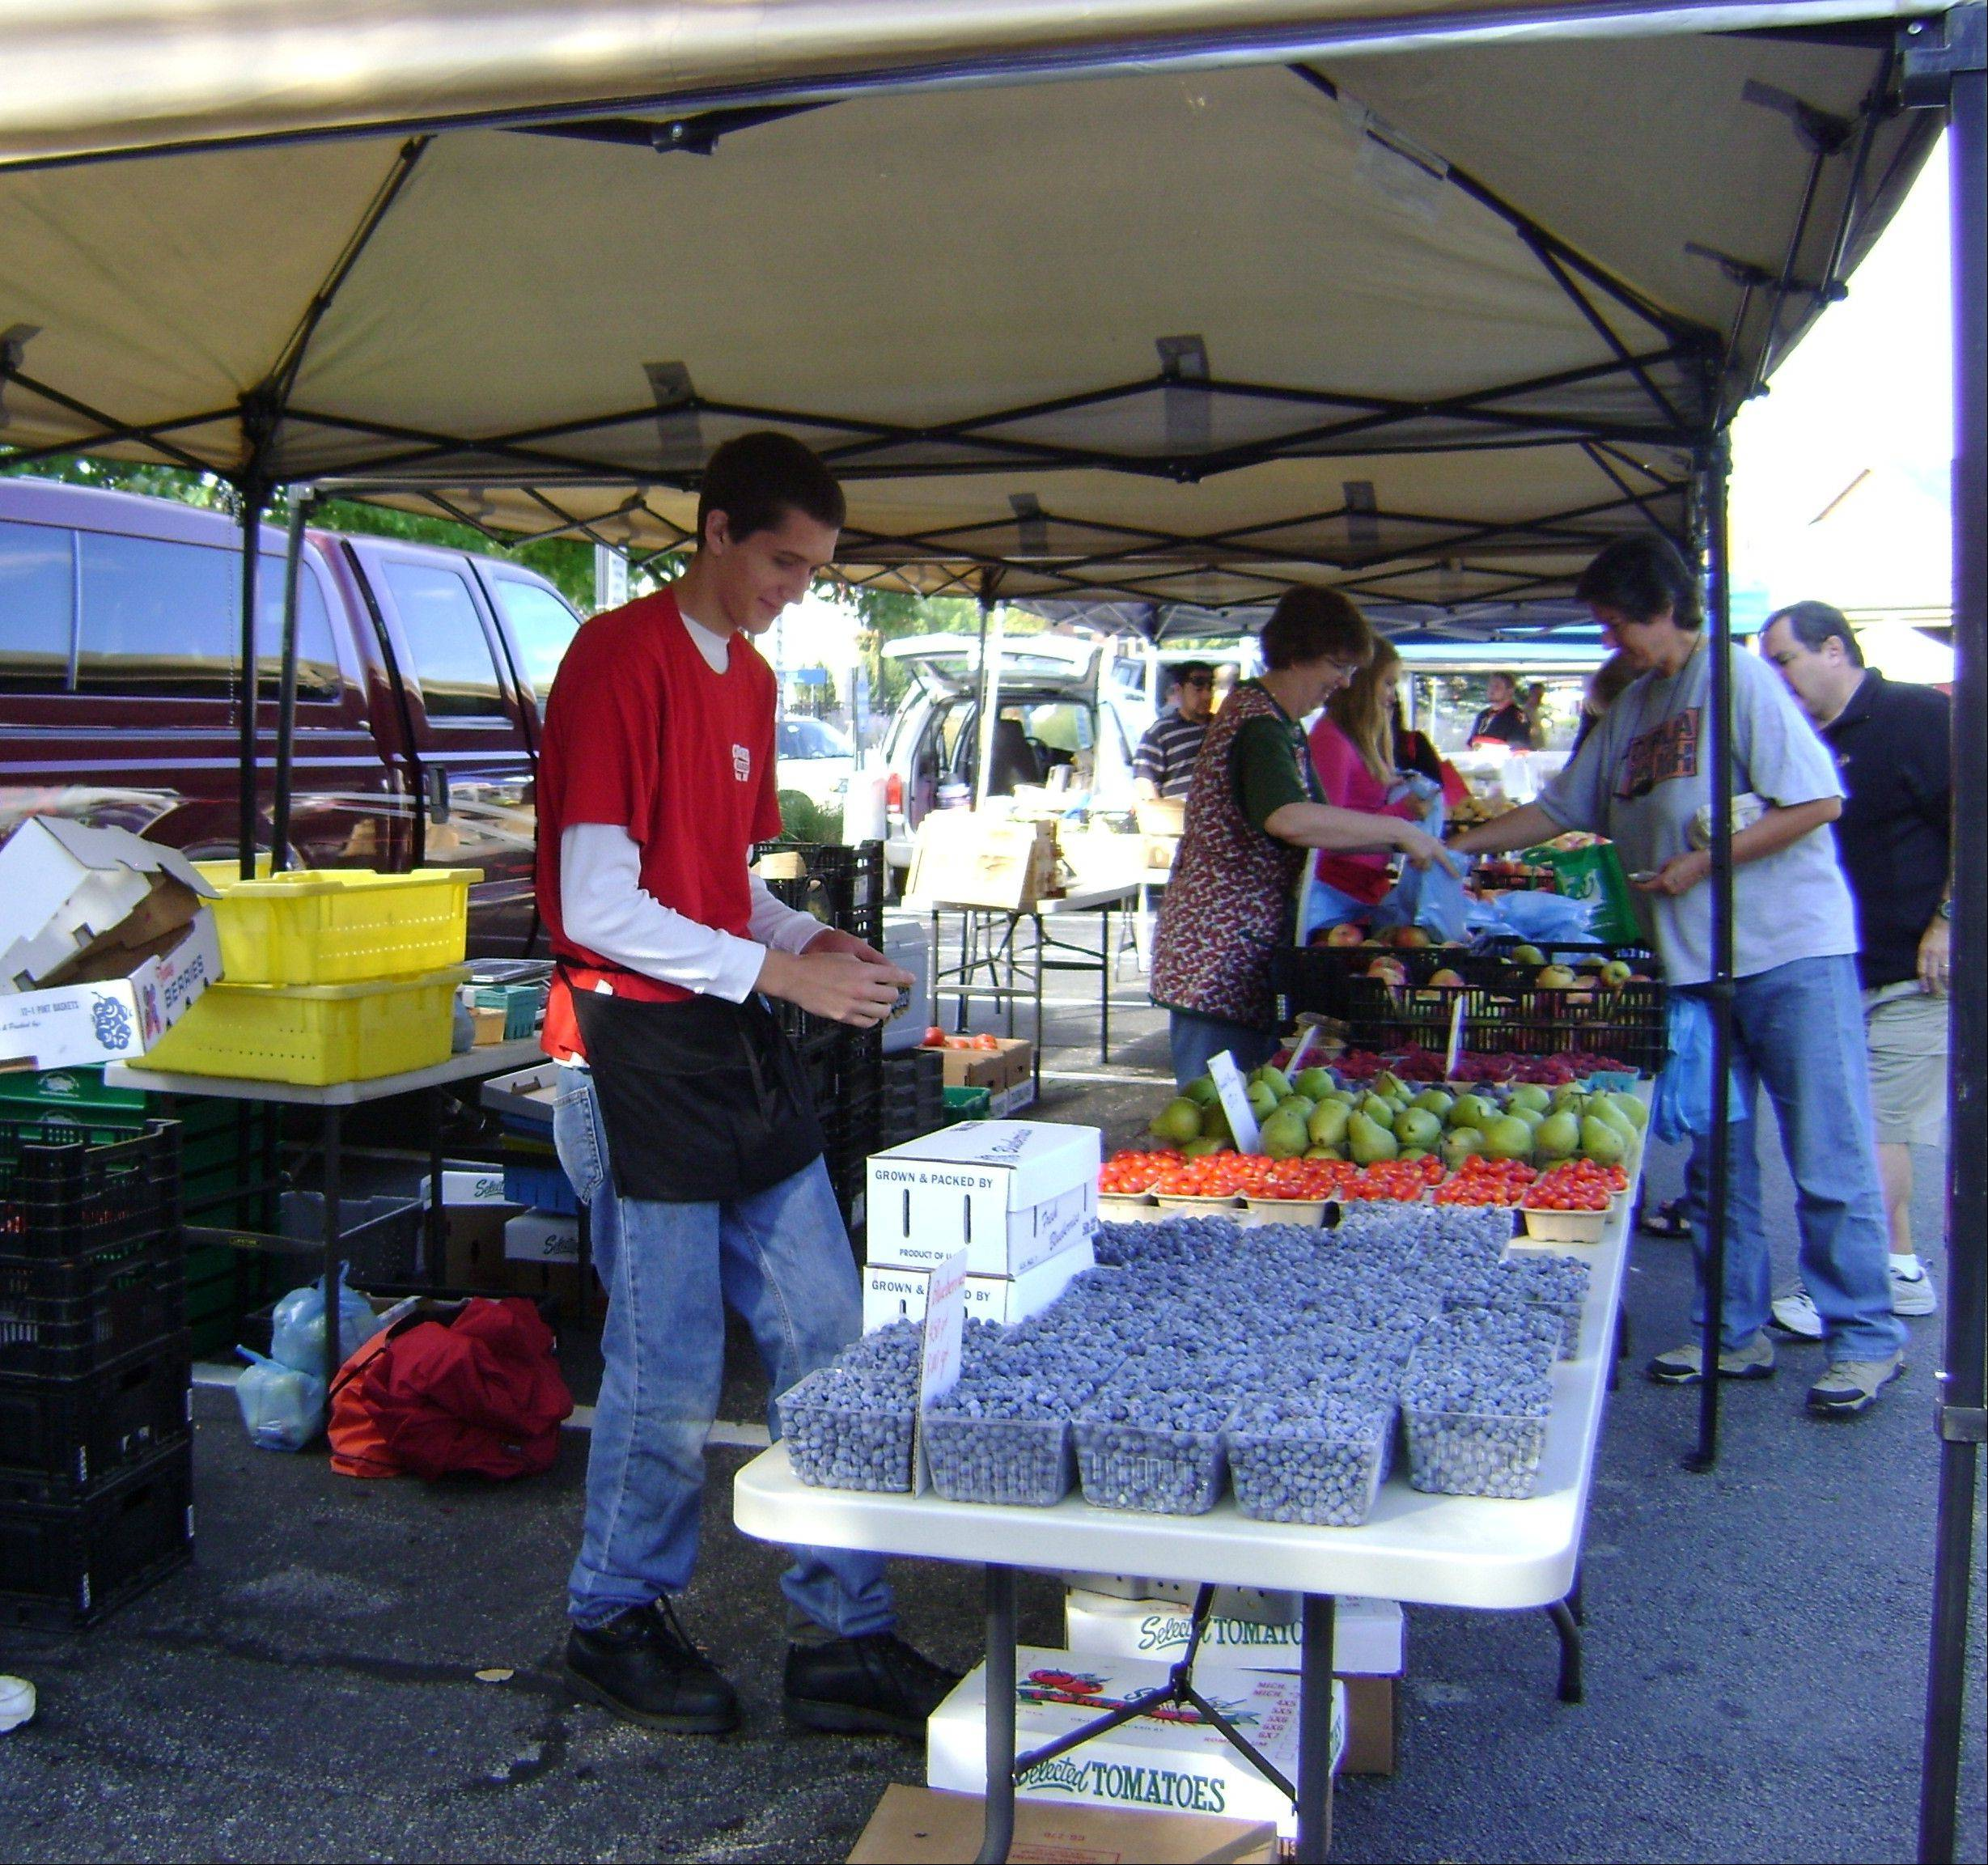 Fruits and berries are harvested and make their way to local farmers markets within a few days. Vendors will share information on where their food is grown.